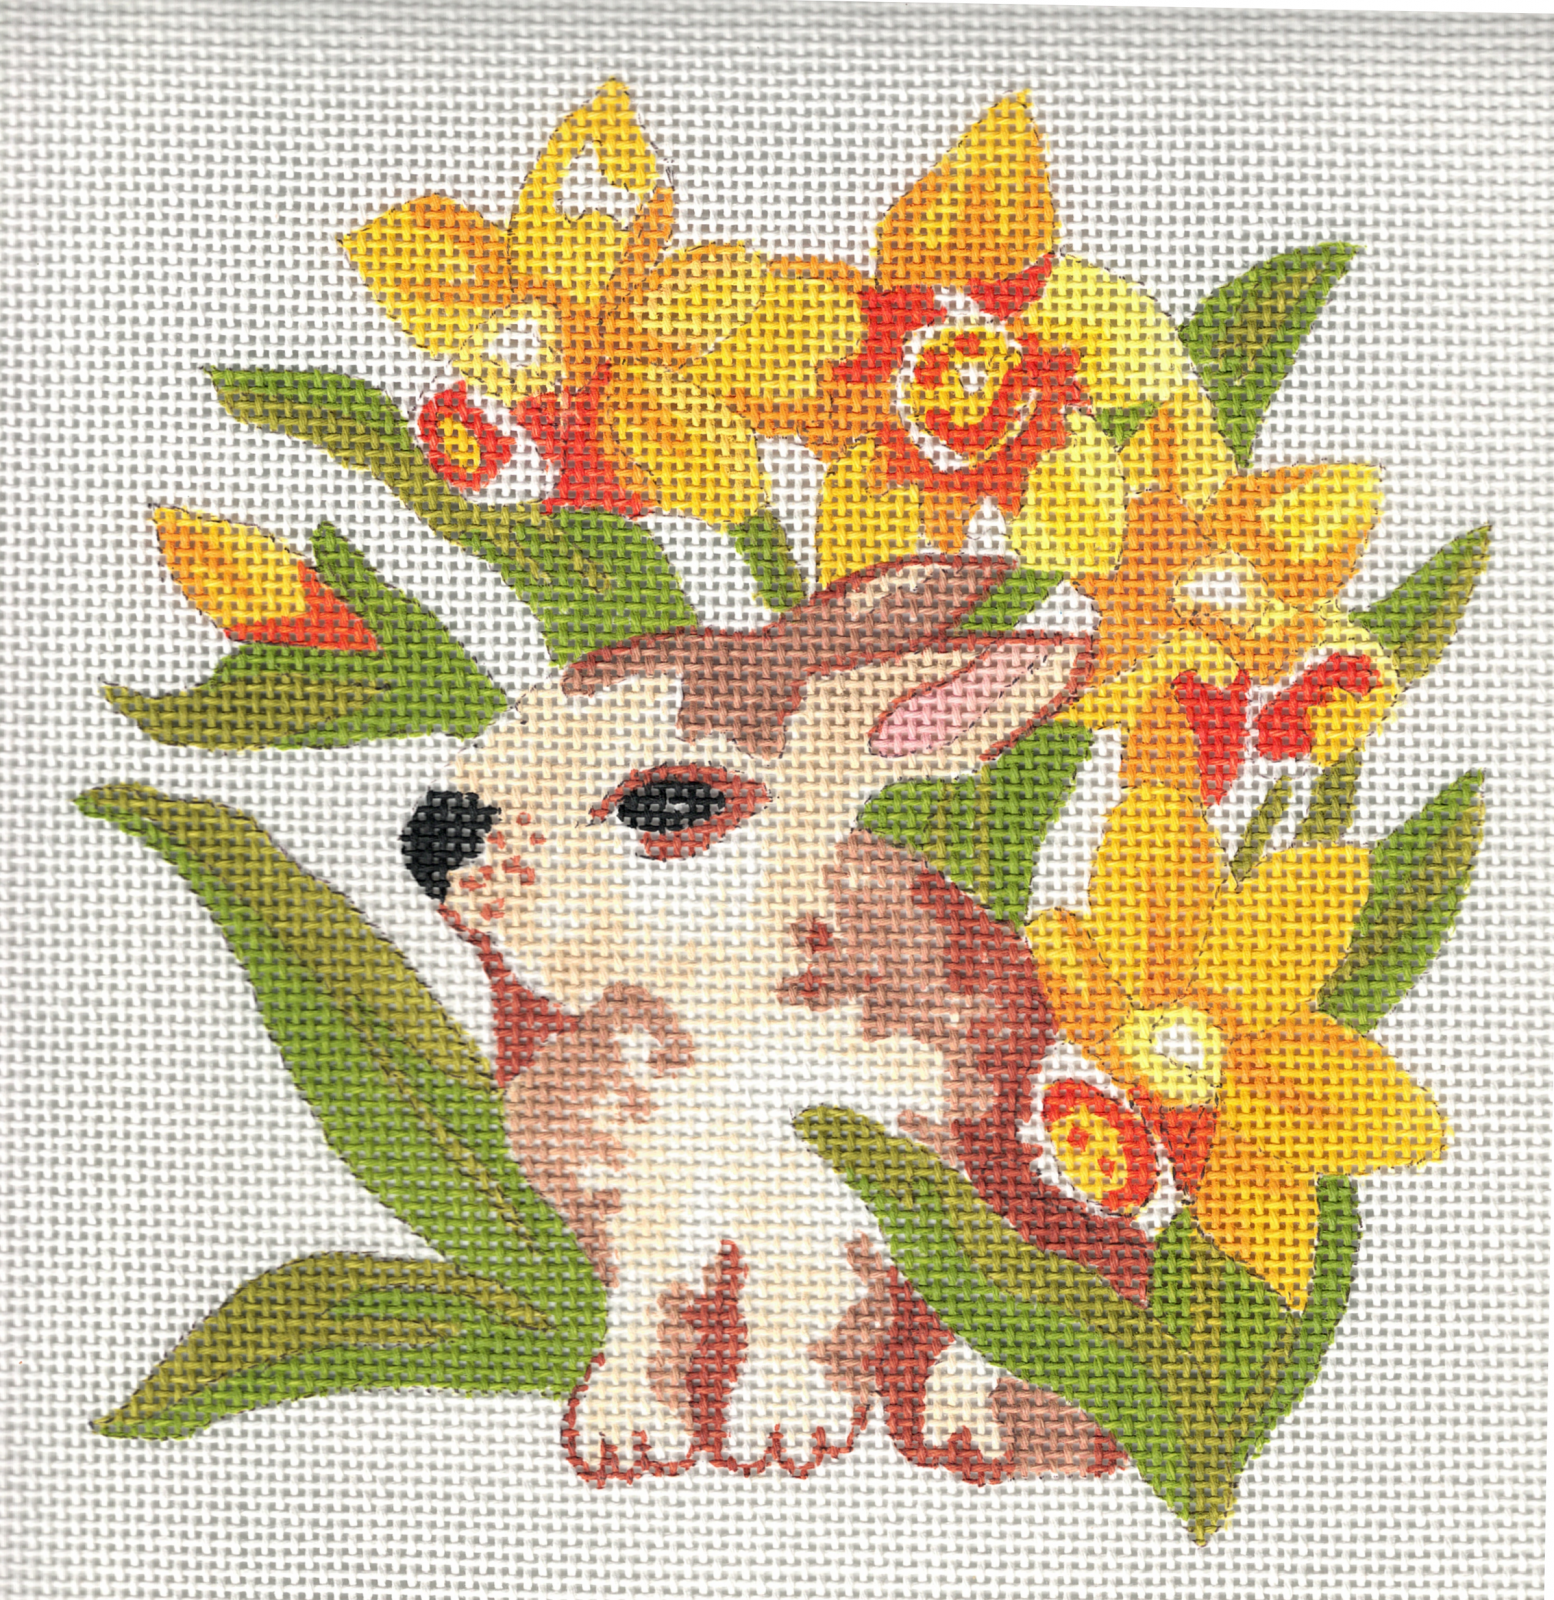 Bunny with Daffodils - 14M